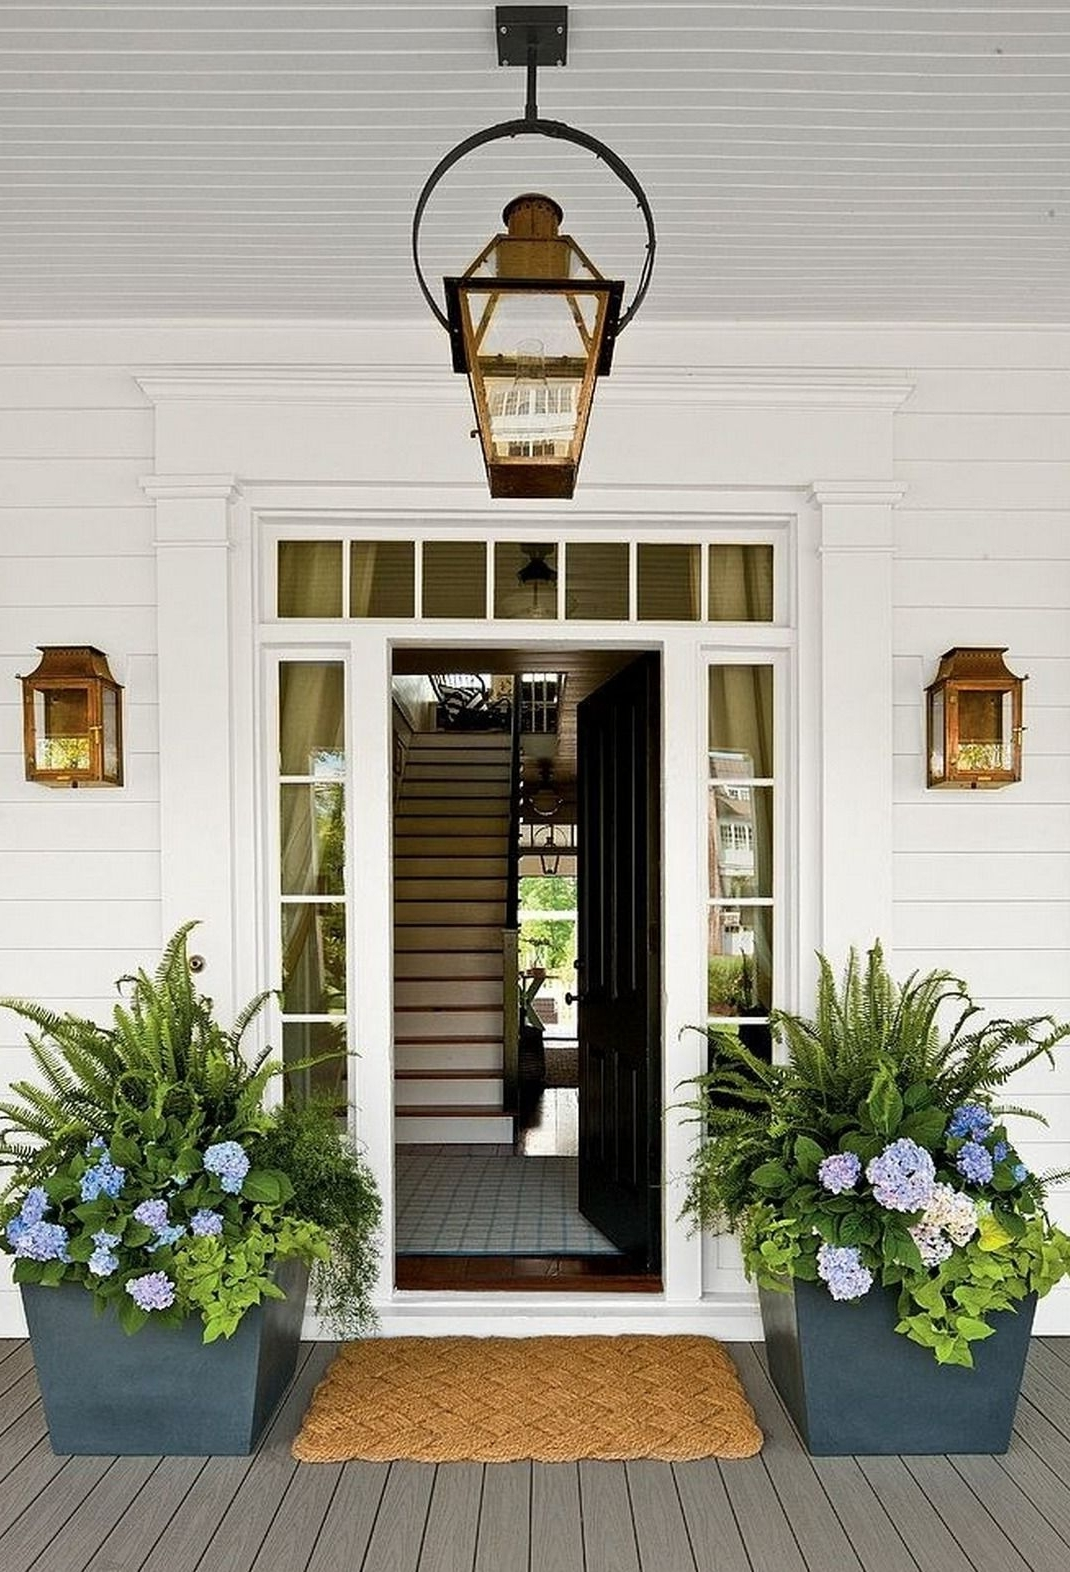 Preferred Outdoor Lanterns For Front Porch For Exterior Lighting {Charming Outdoor Lanterns (View 10 of 20)